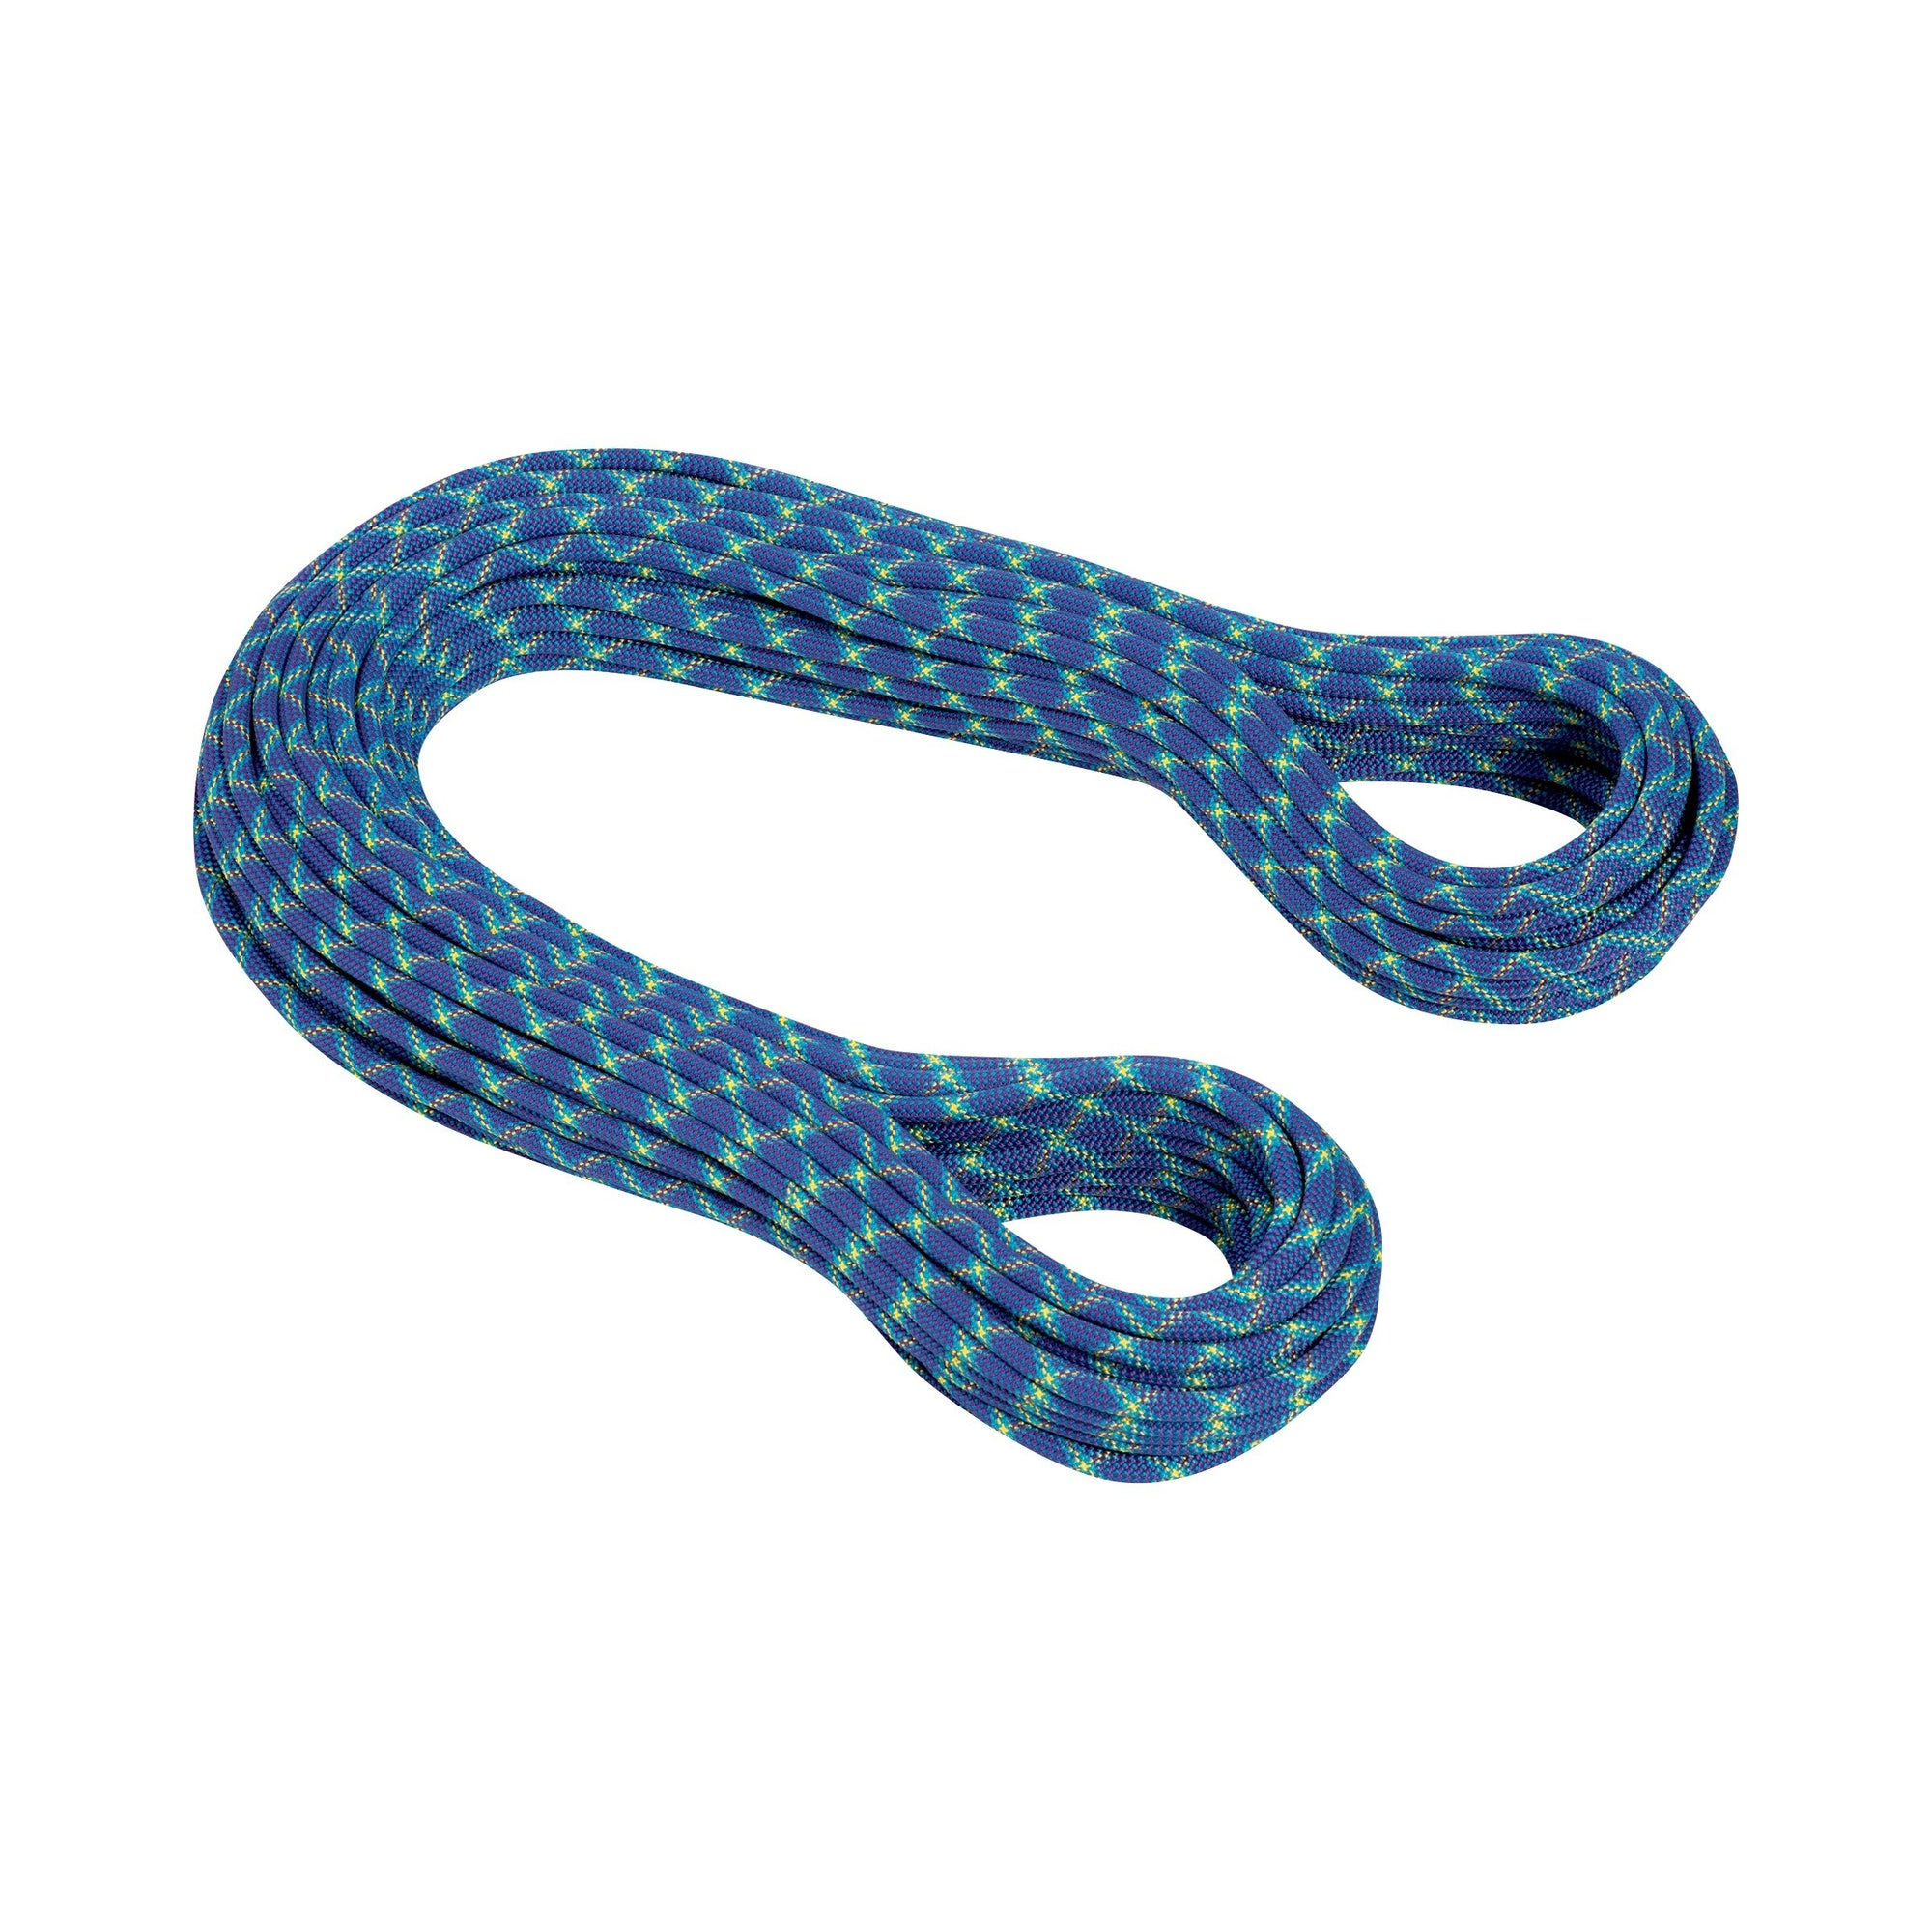 Mammut 8.0 Phoenix 60m PROTECT in Blue